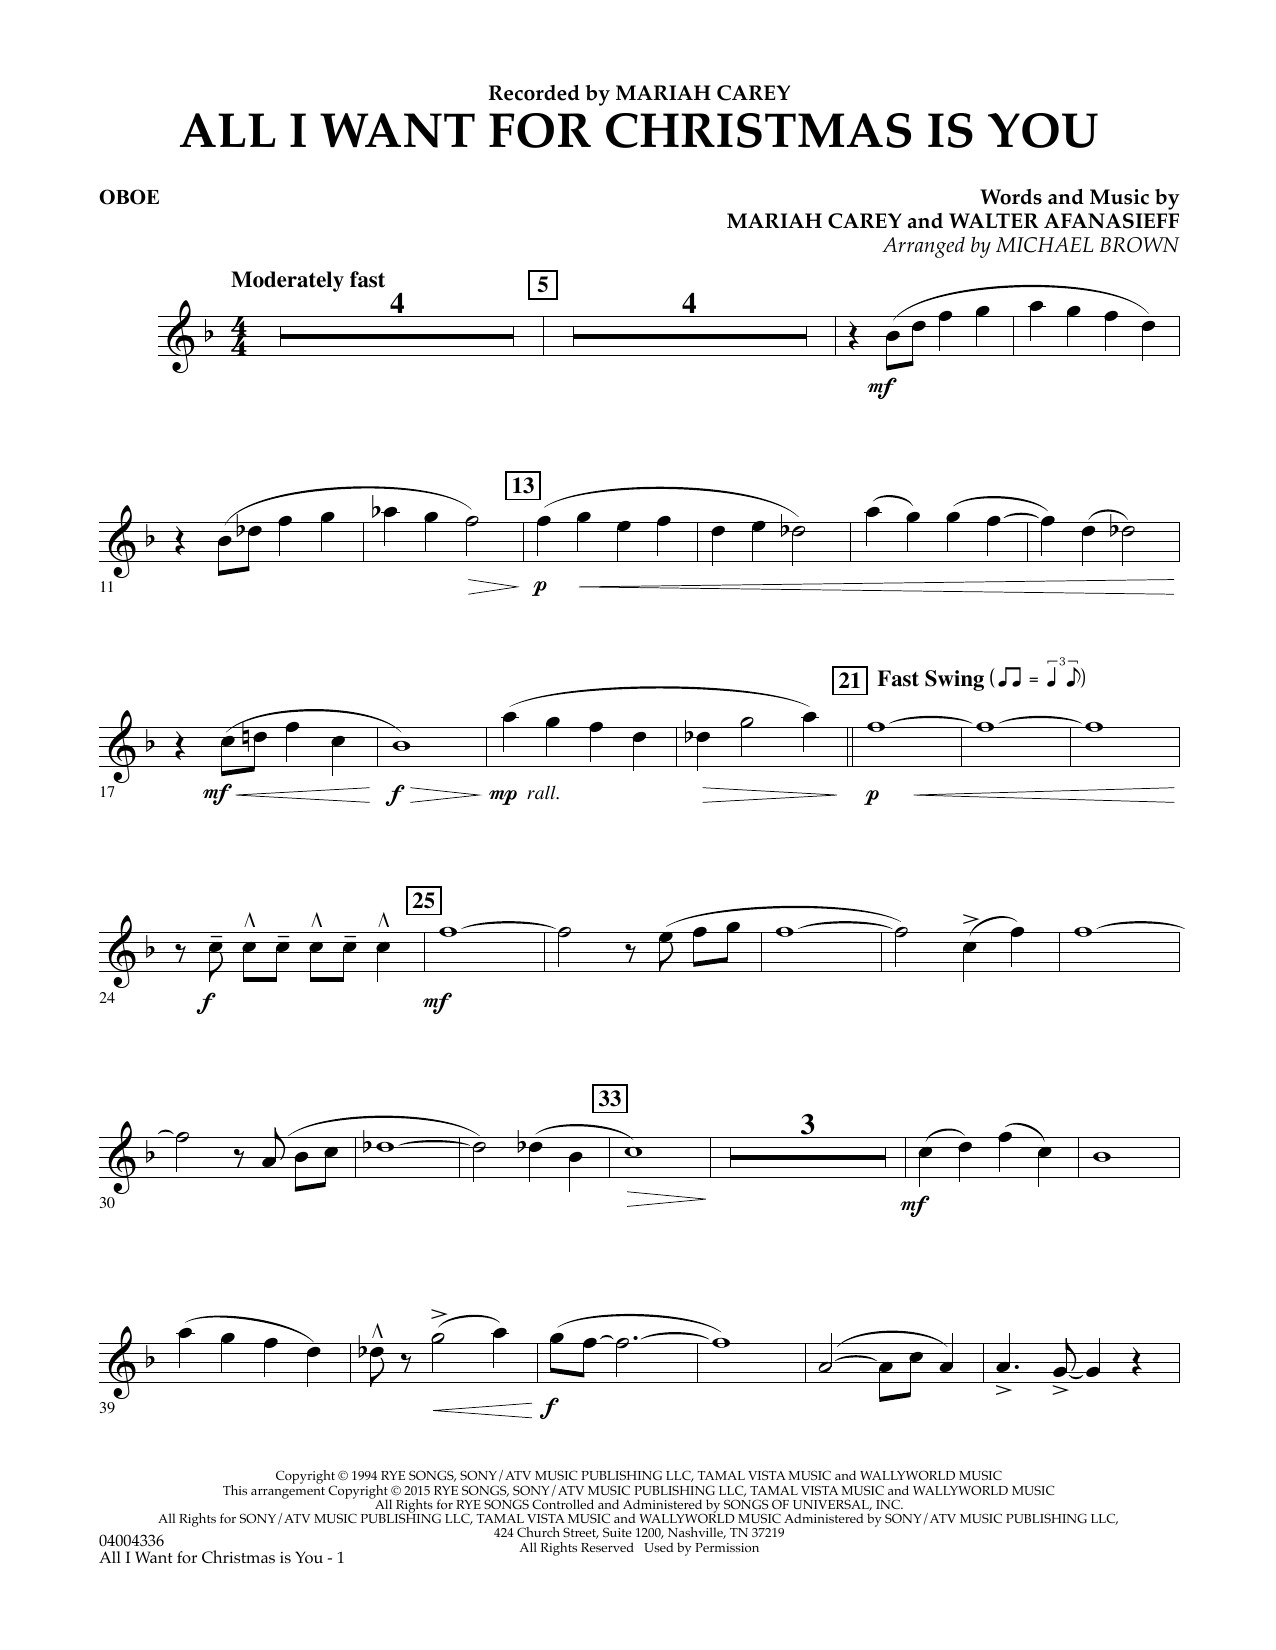 All I Want for Christmas Is You (arr. Michael Brown) - Oboe (Concert Band)